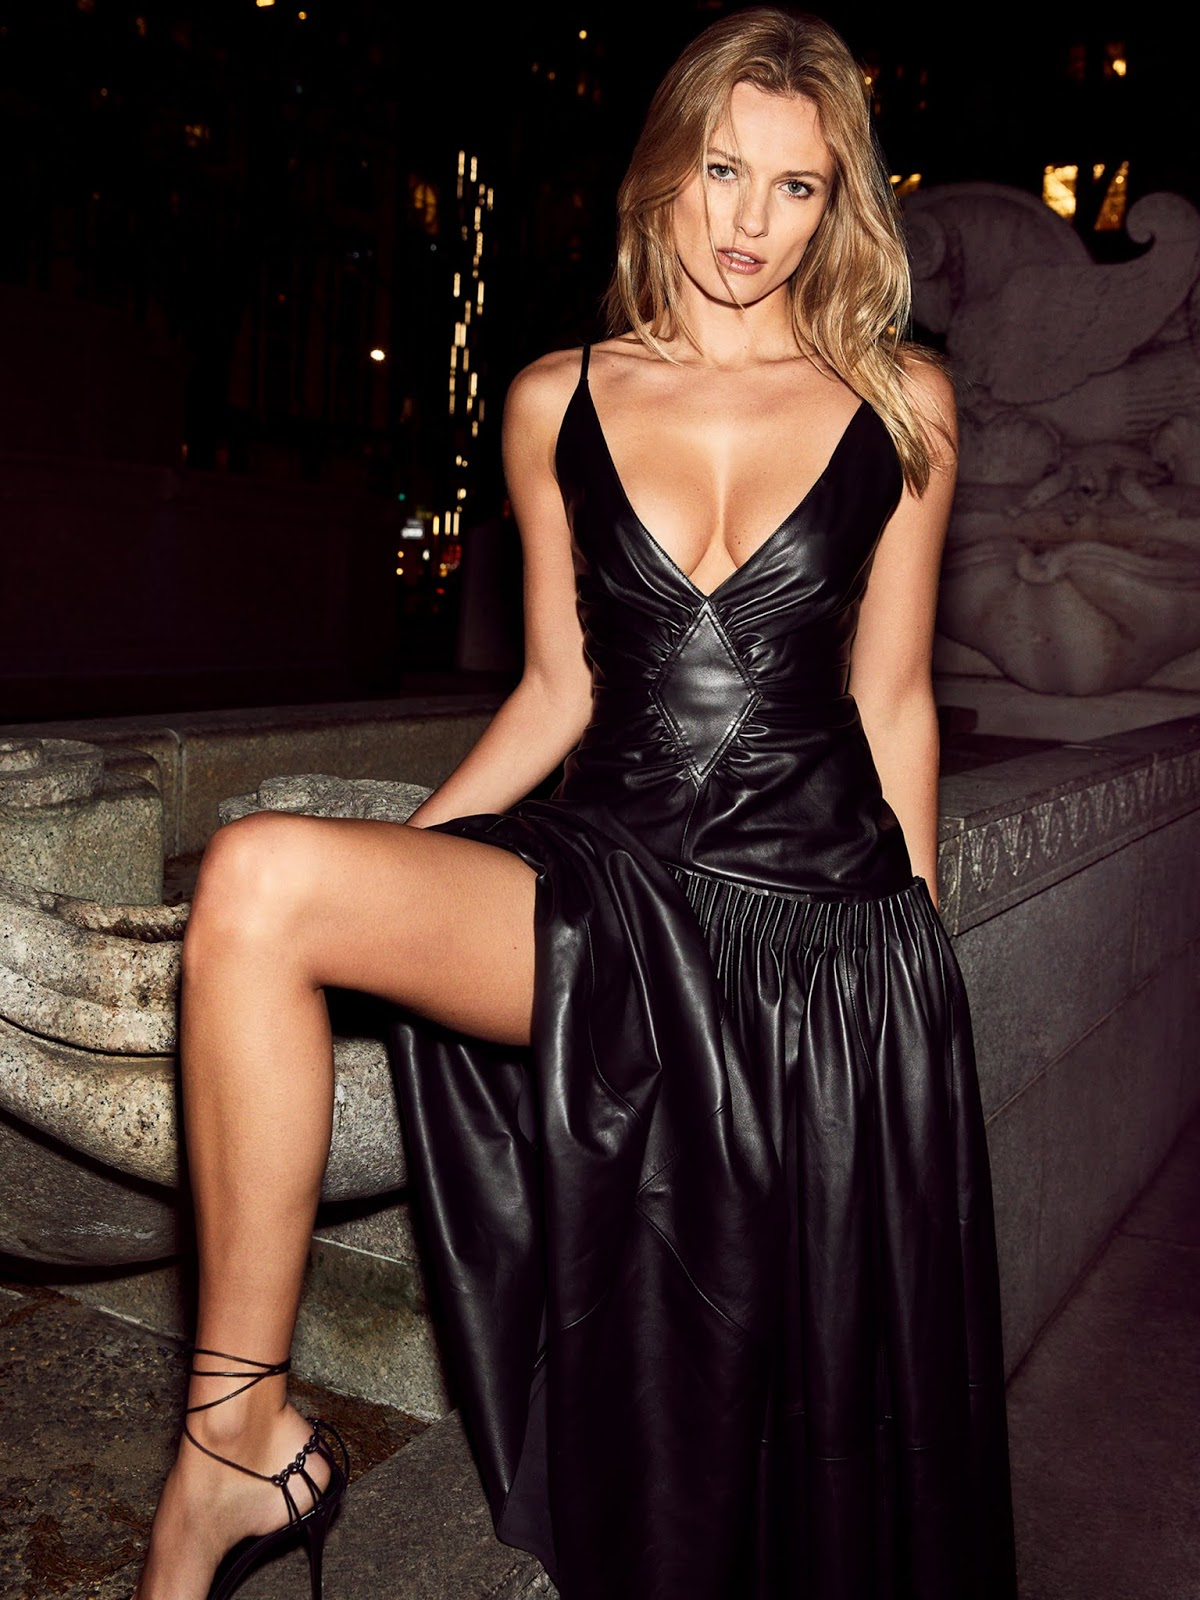 Edita Vilkeviciute by Carin Backoff for Porter Edit